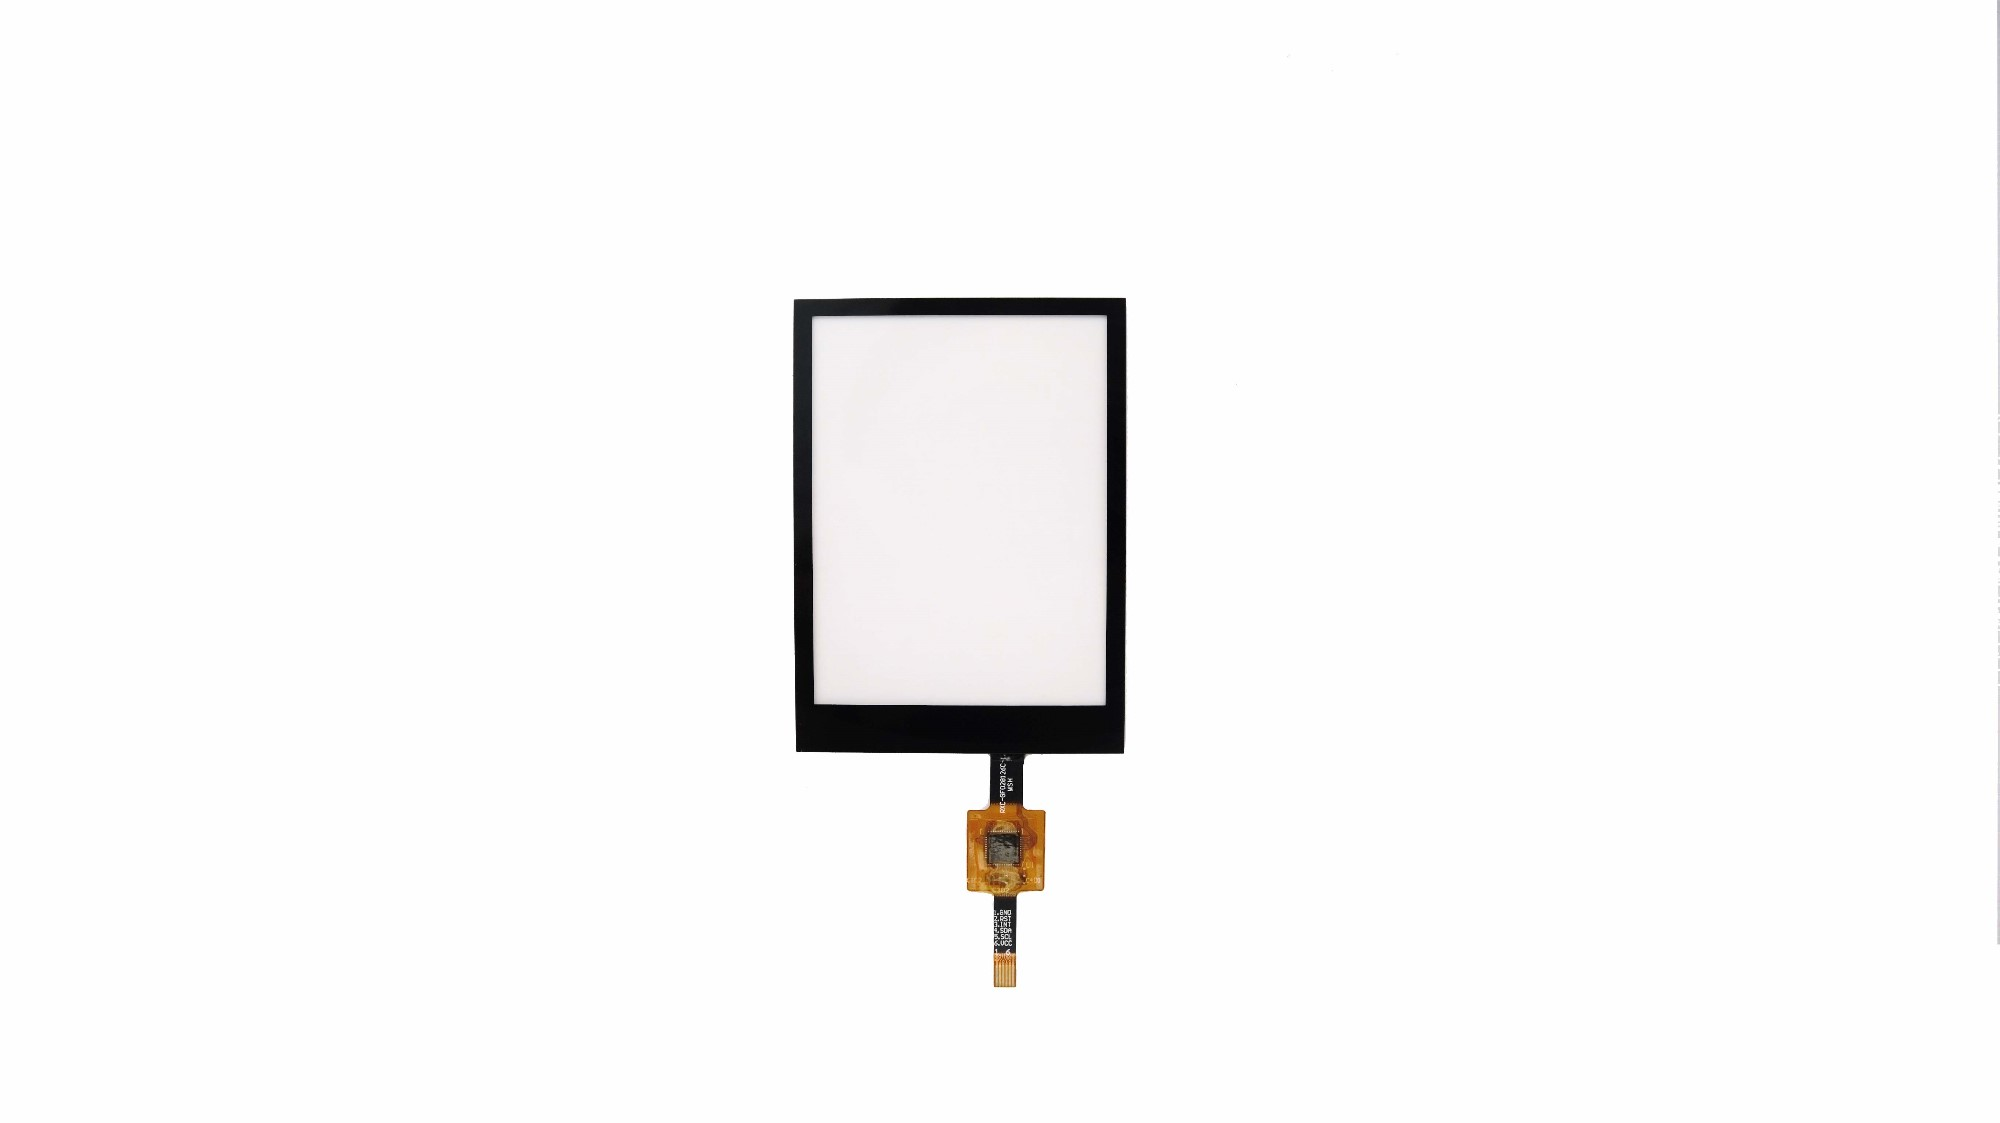 Custom China Industrial Equipment 2.8 Inch Capacitive Touch Touch Panel, Industrial Equipment 2.8 Inch Capacitive Touch Touch Panel Factory, Industrial Equipment 2.8 Inch Capacitive Touch Touch Panel OEM